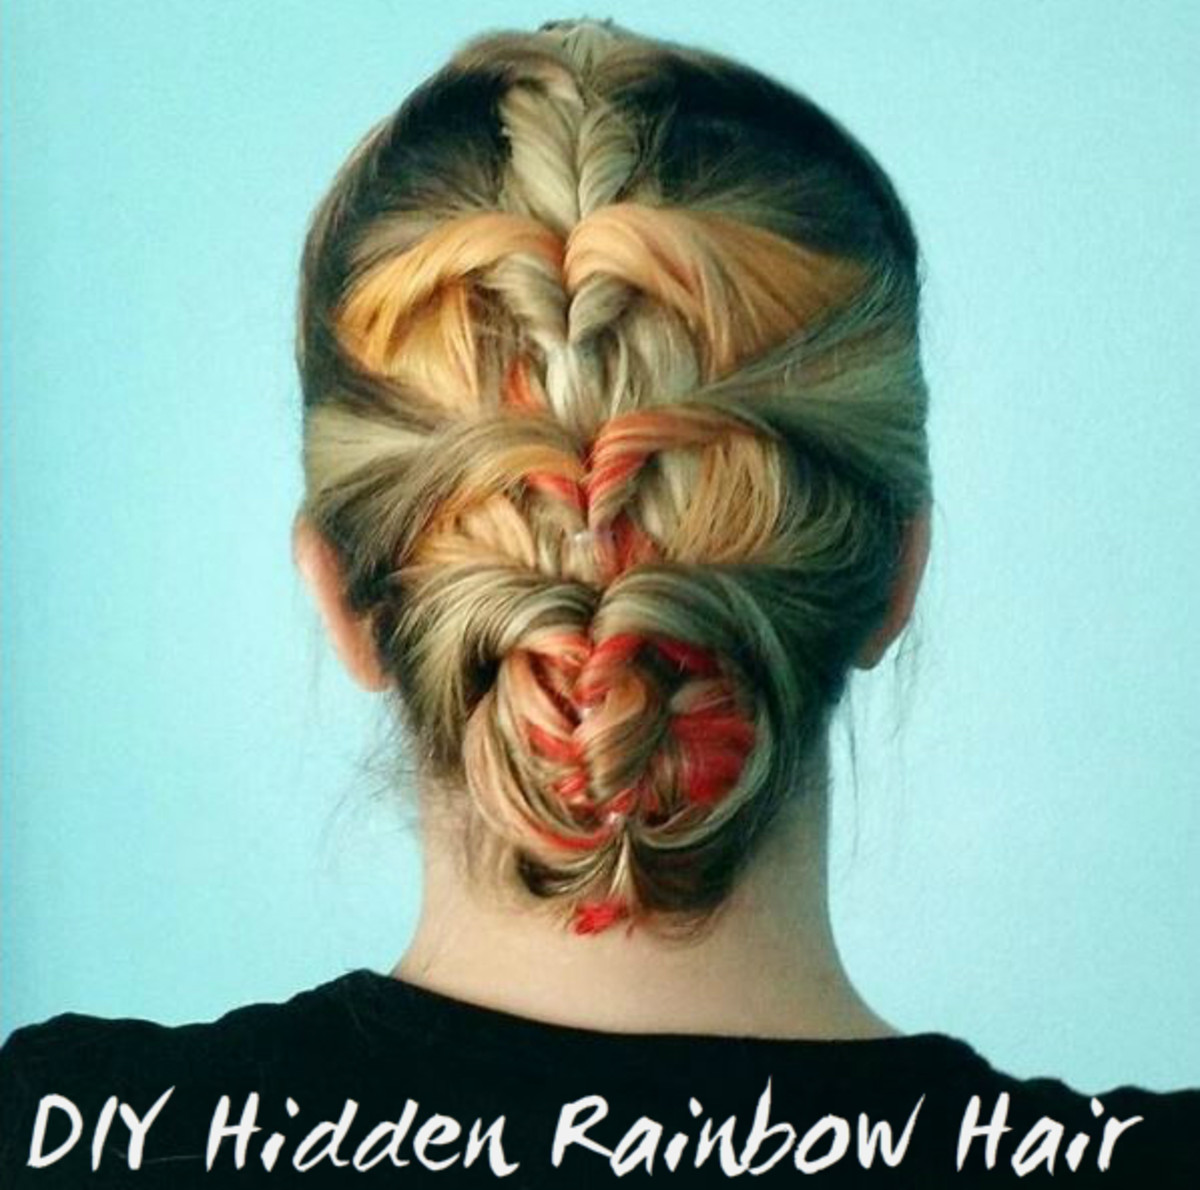 Give yourself hidden rainbow hair at home.